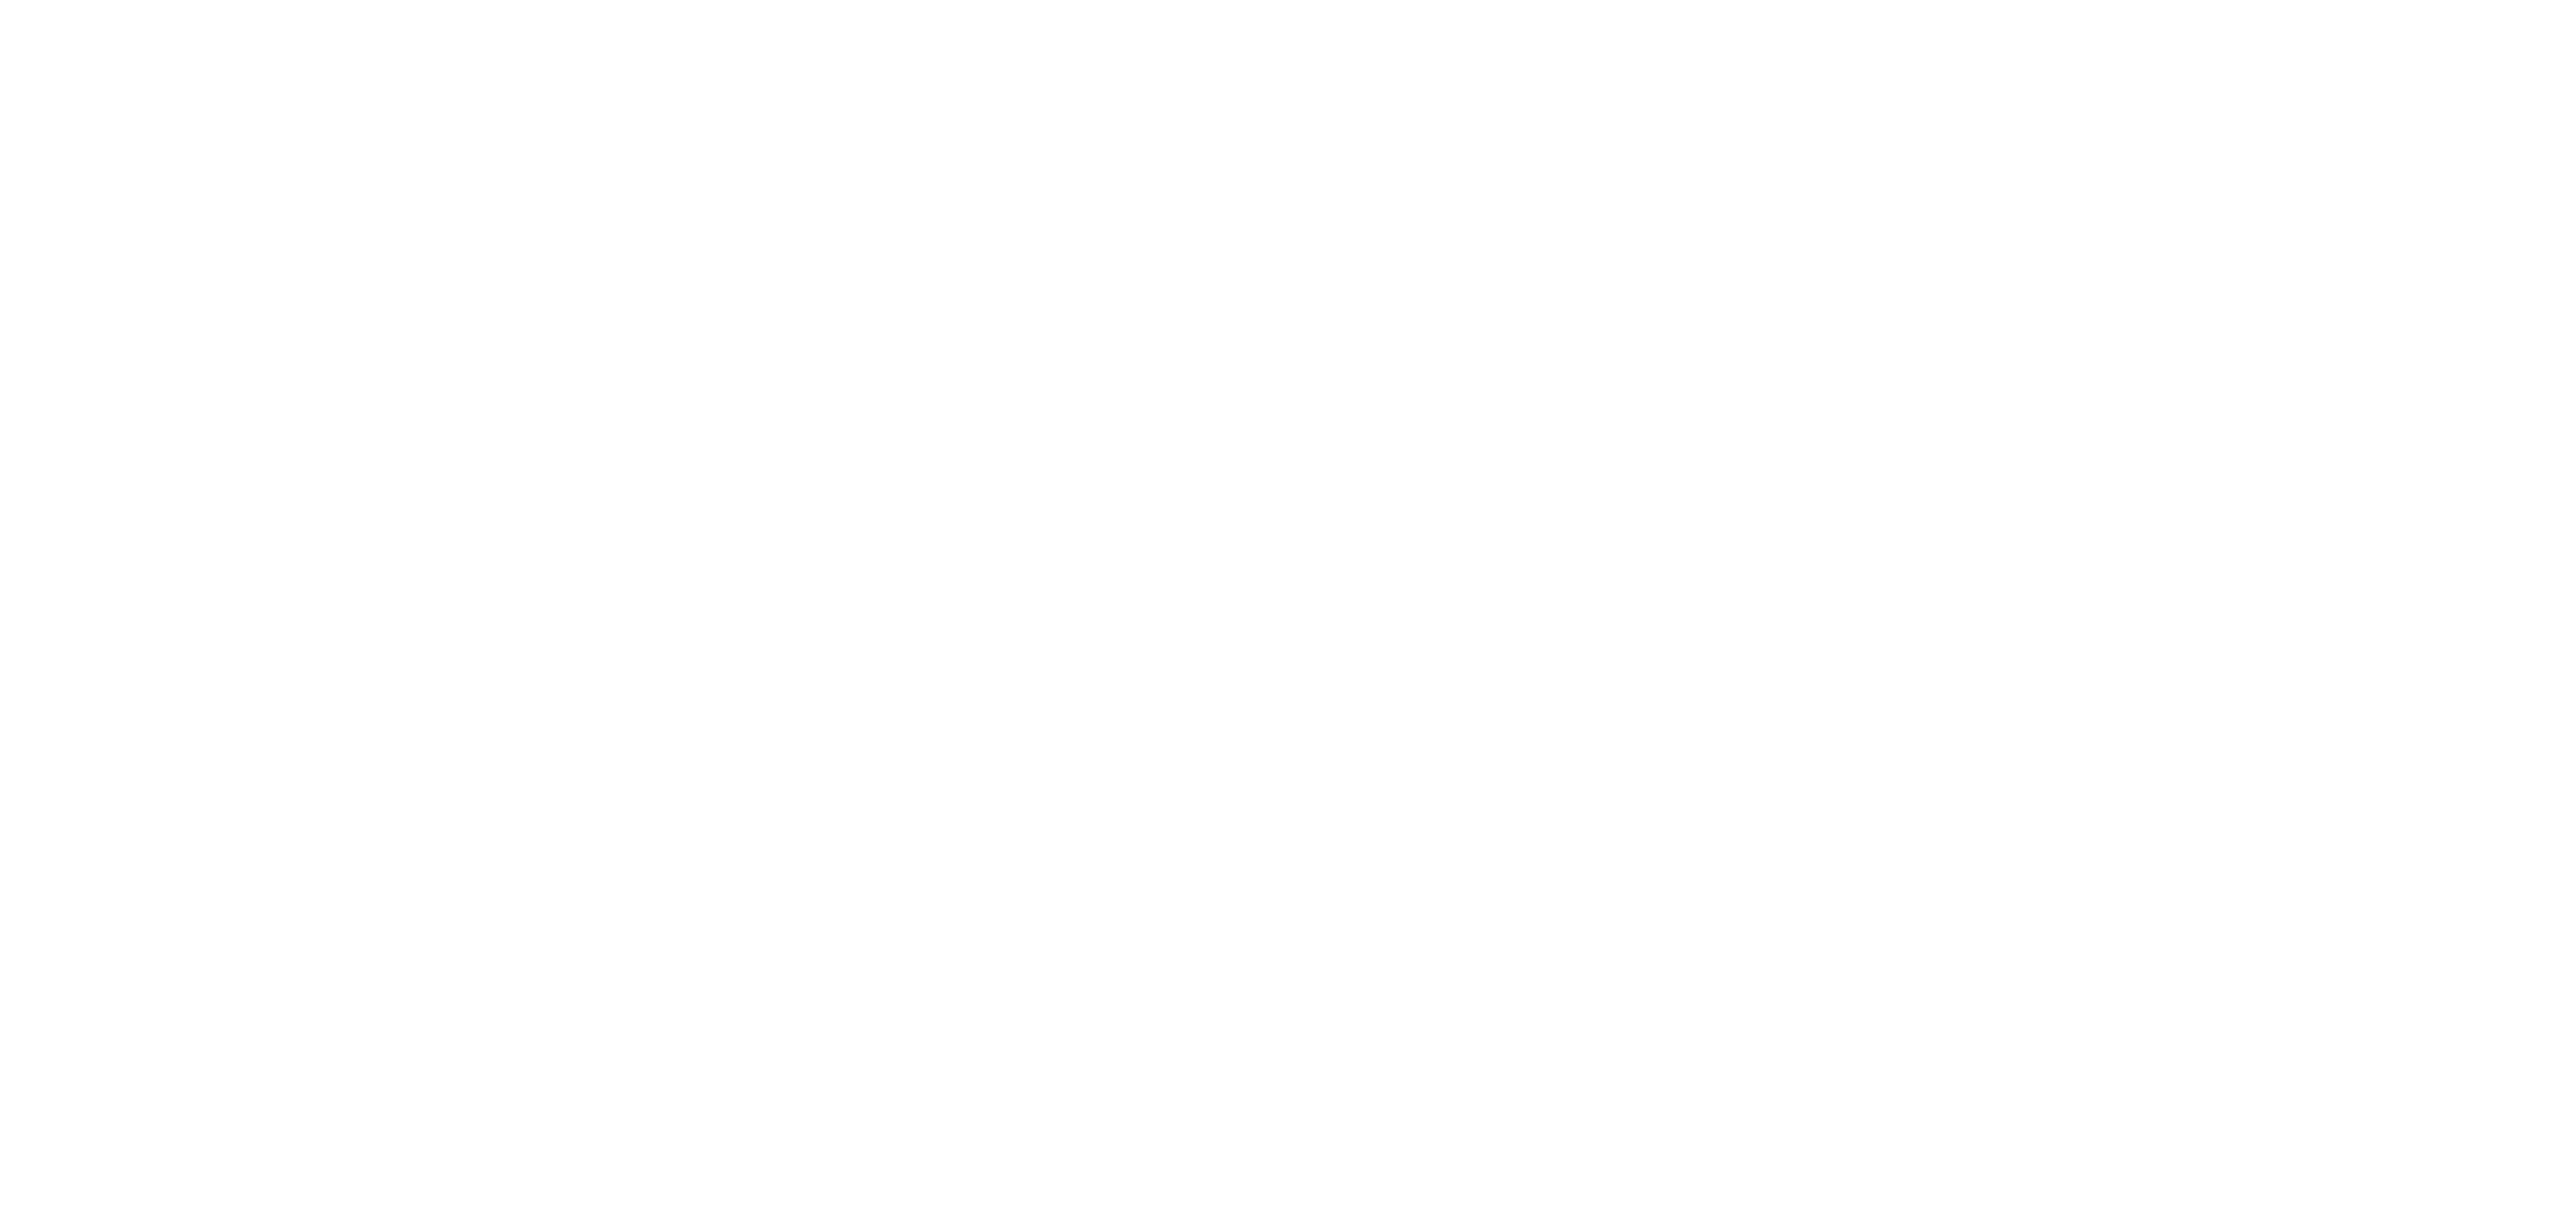 Gloucester Roofer Roofing Property Maintenance Services